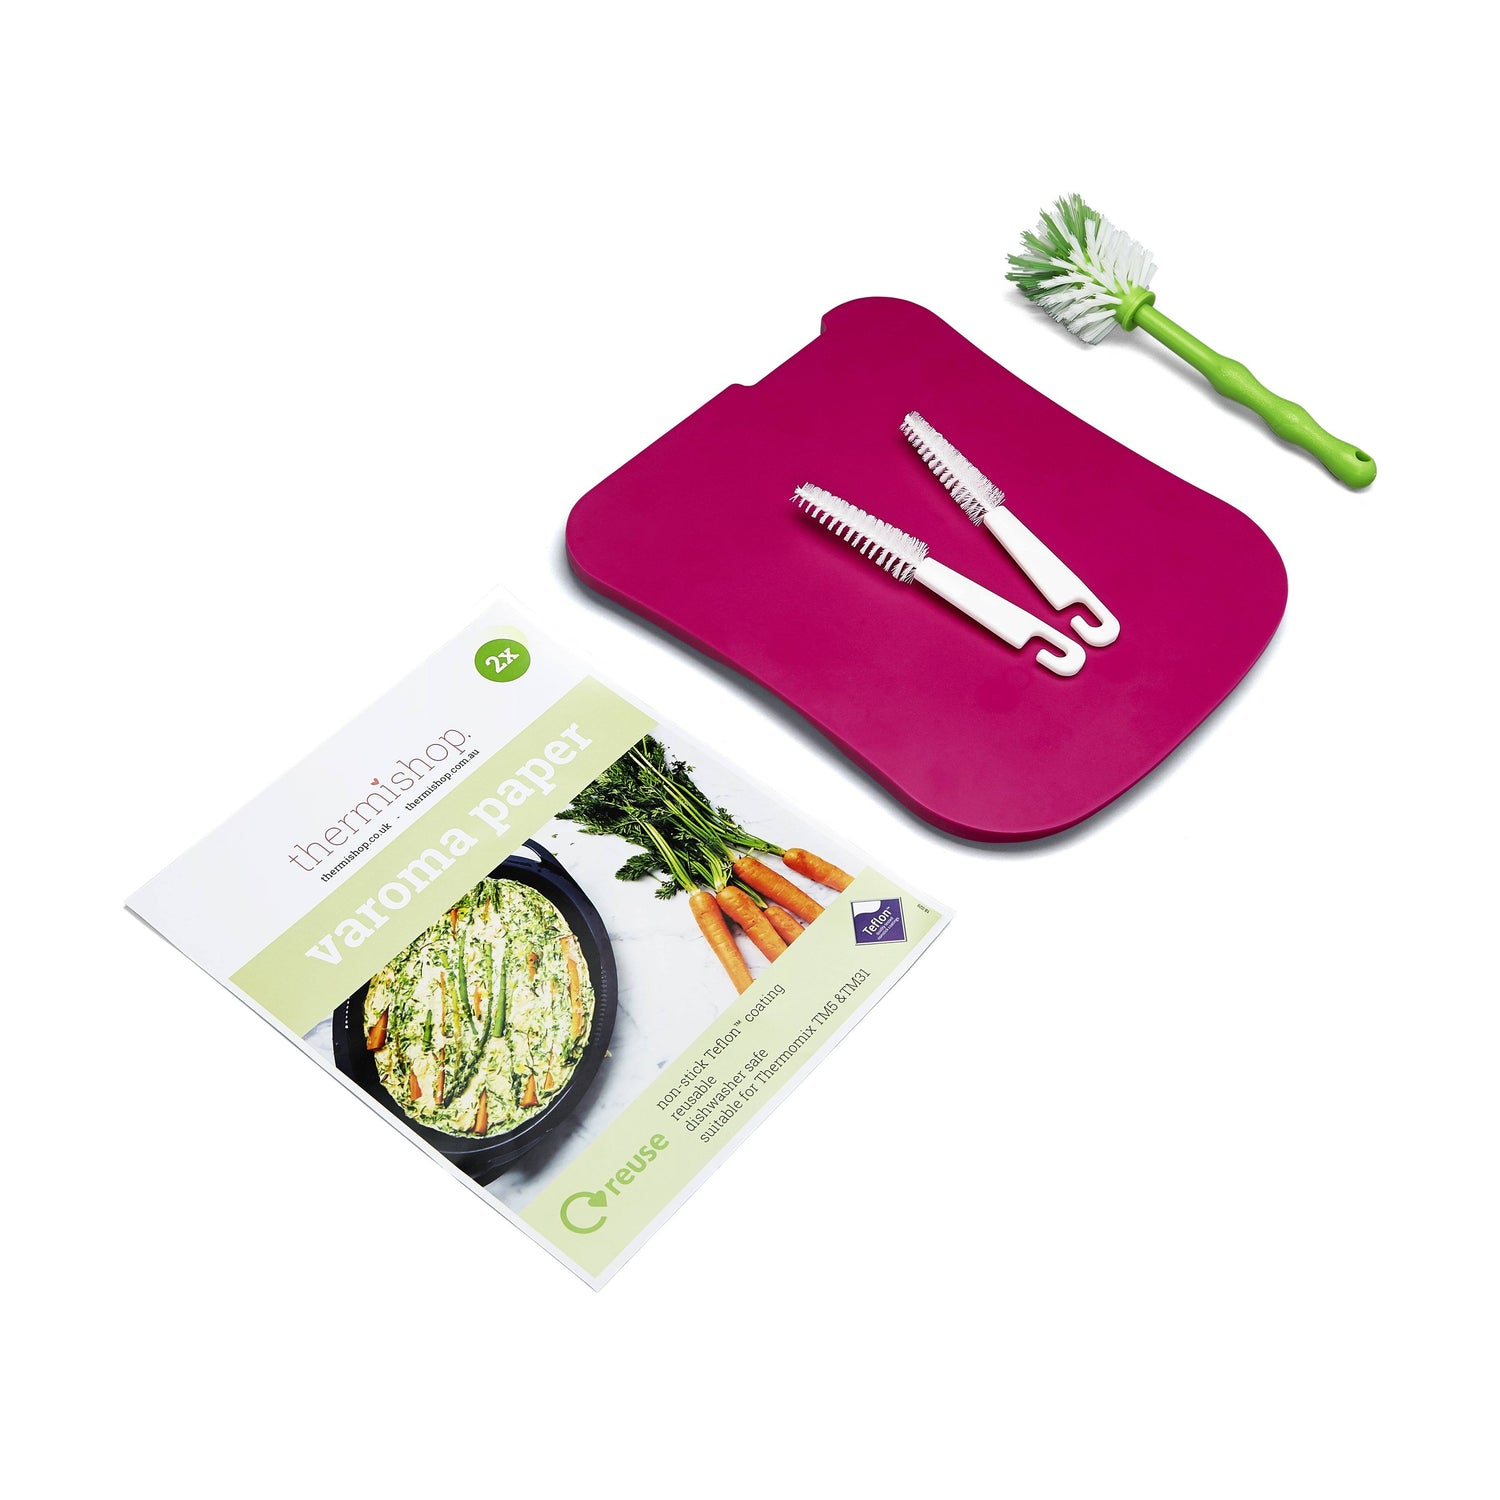 Starter Bundle for Thermomix - Pink - thermishop.com.au